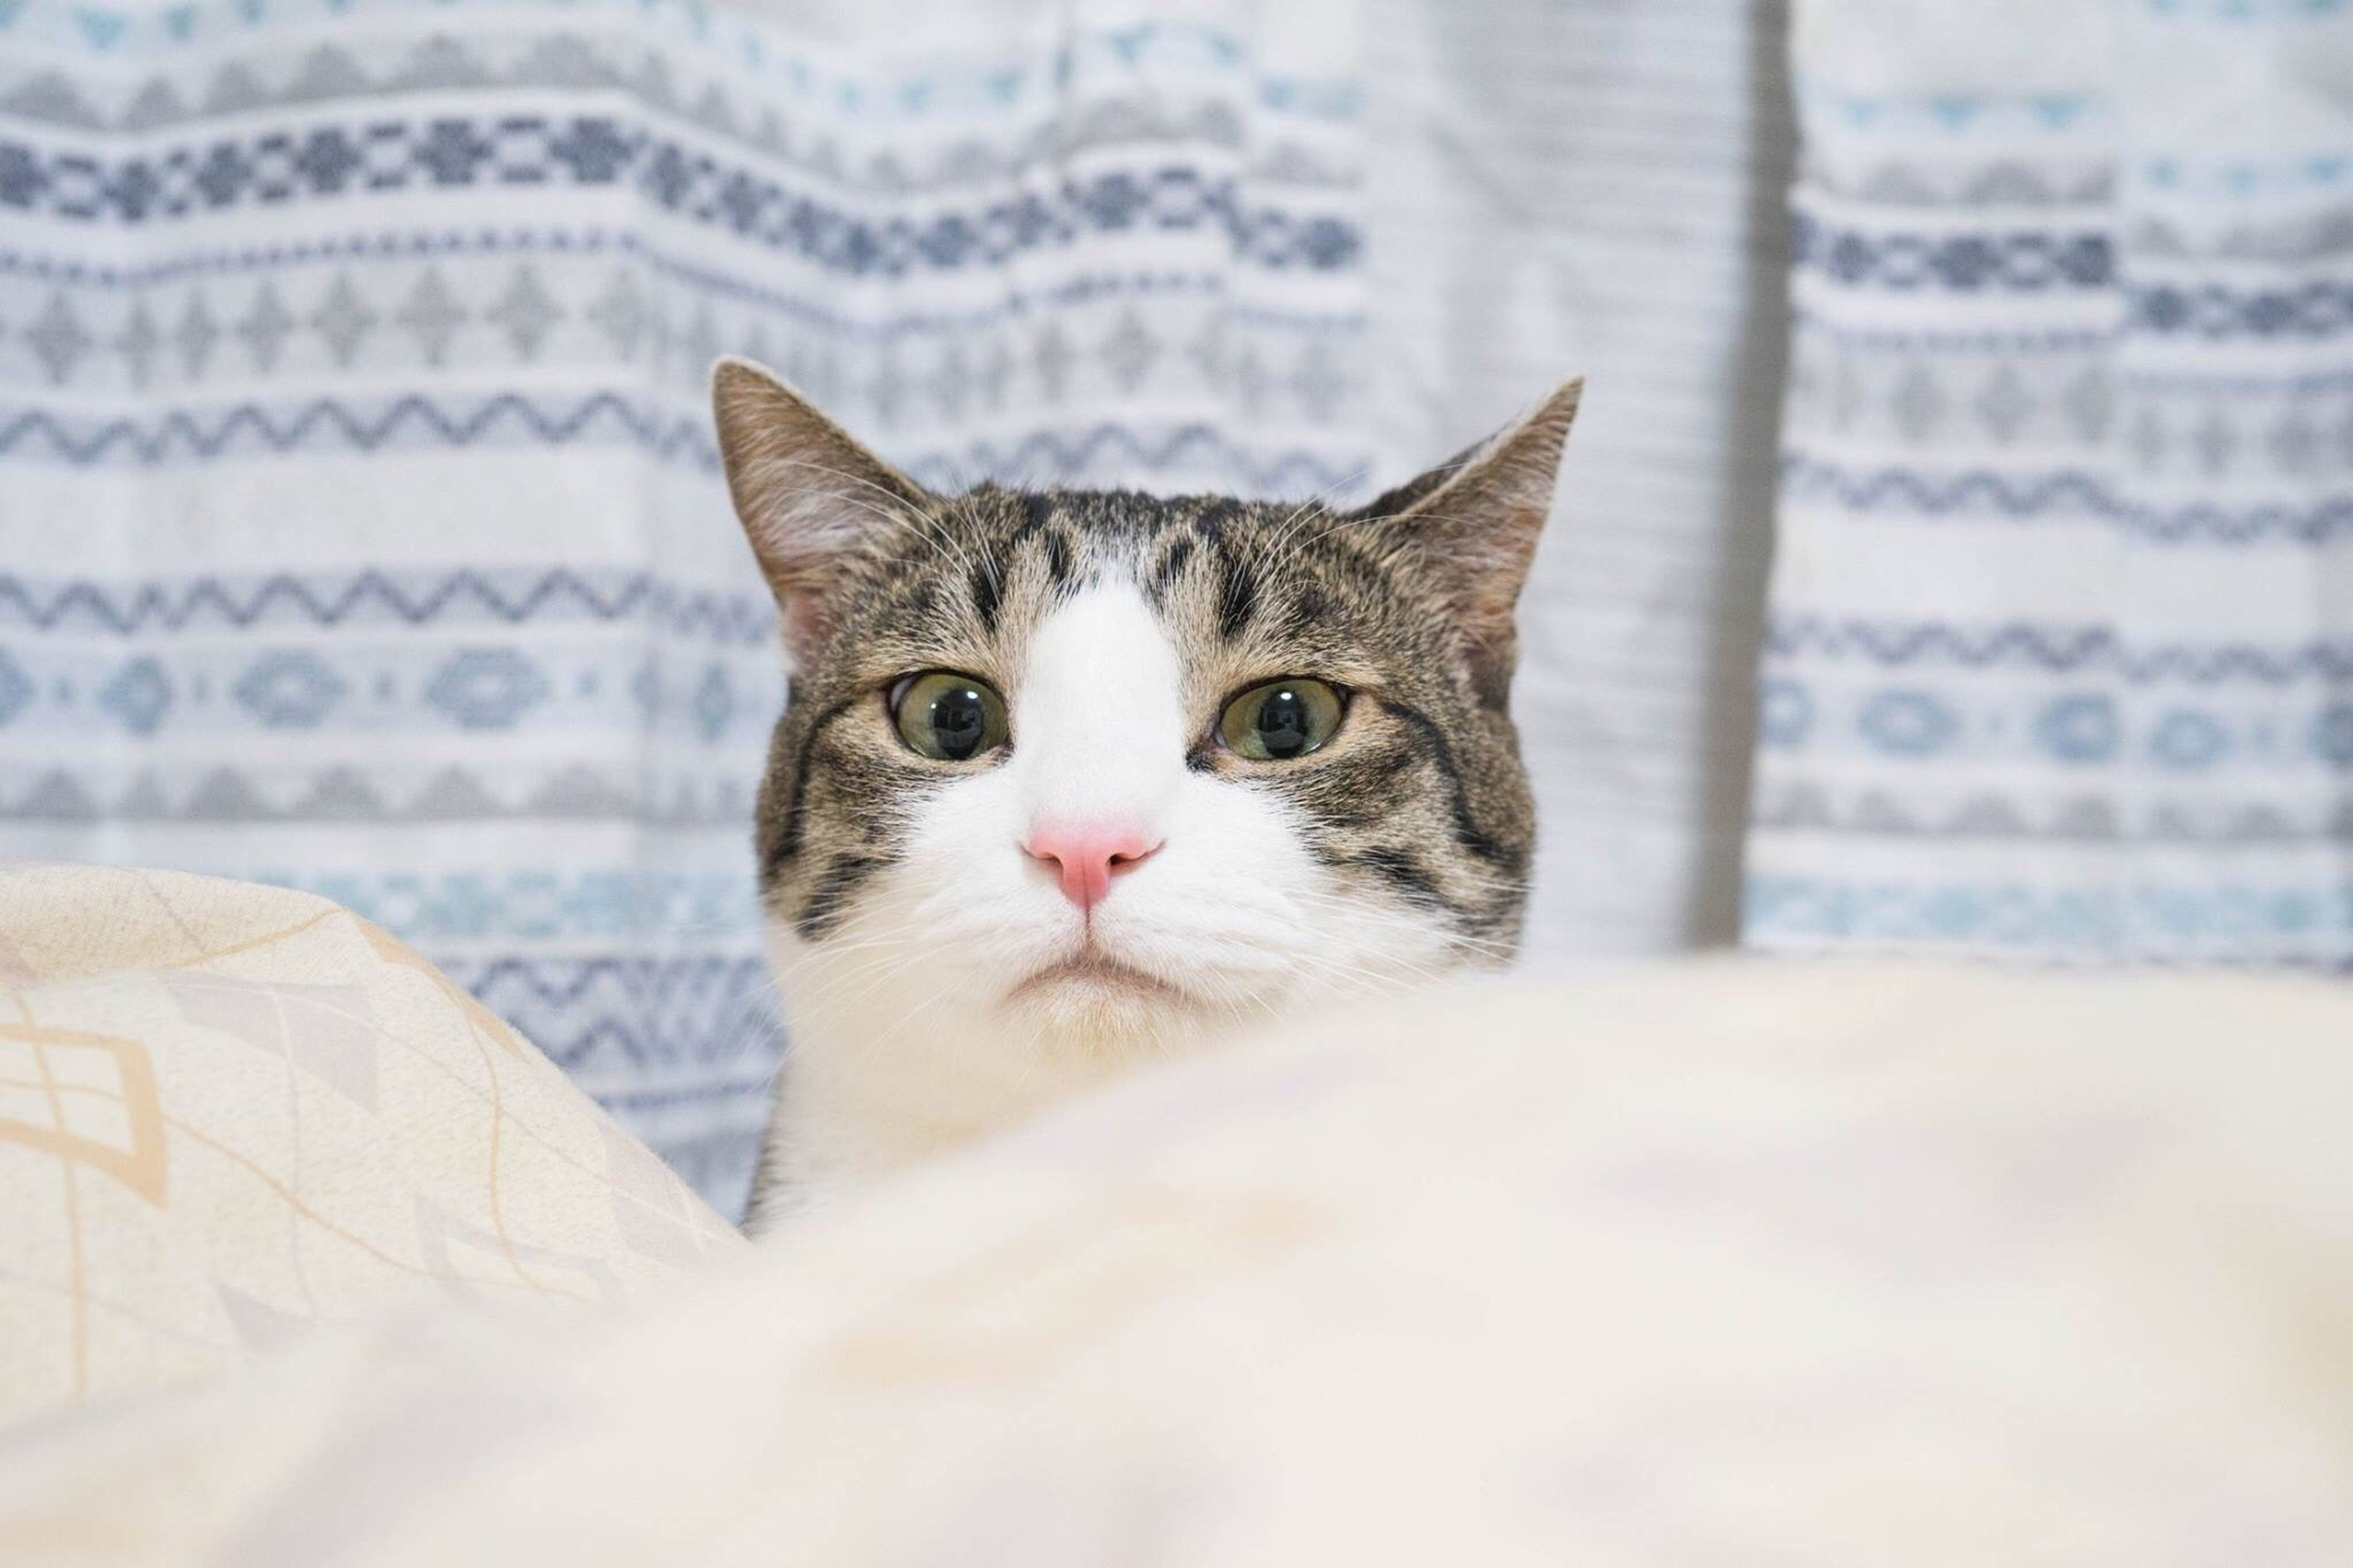 domestic cat, pets, looking at camera, portrait, domestic animals, mammal, feline, animal themes, one animal, no people, close-up, indoors, tabby cat, day